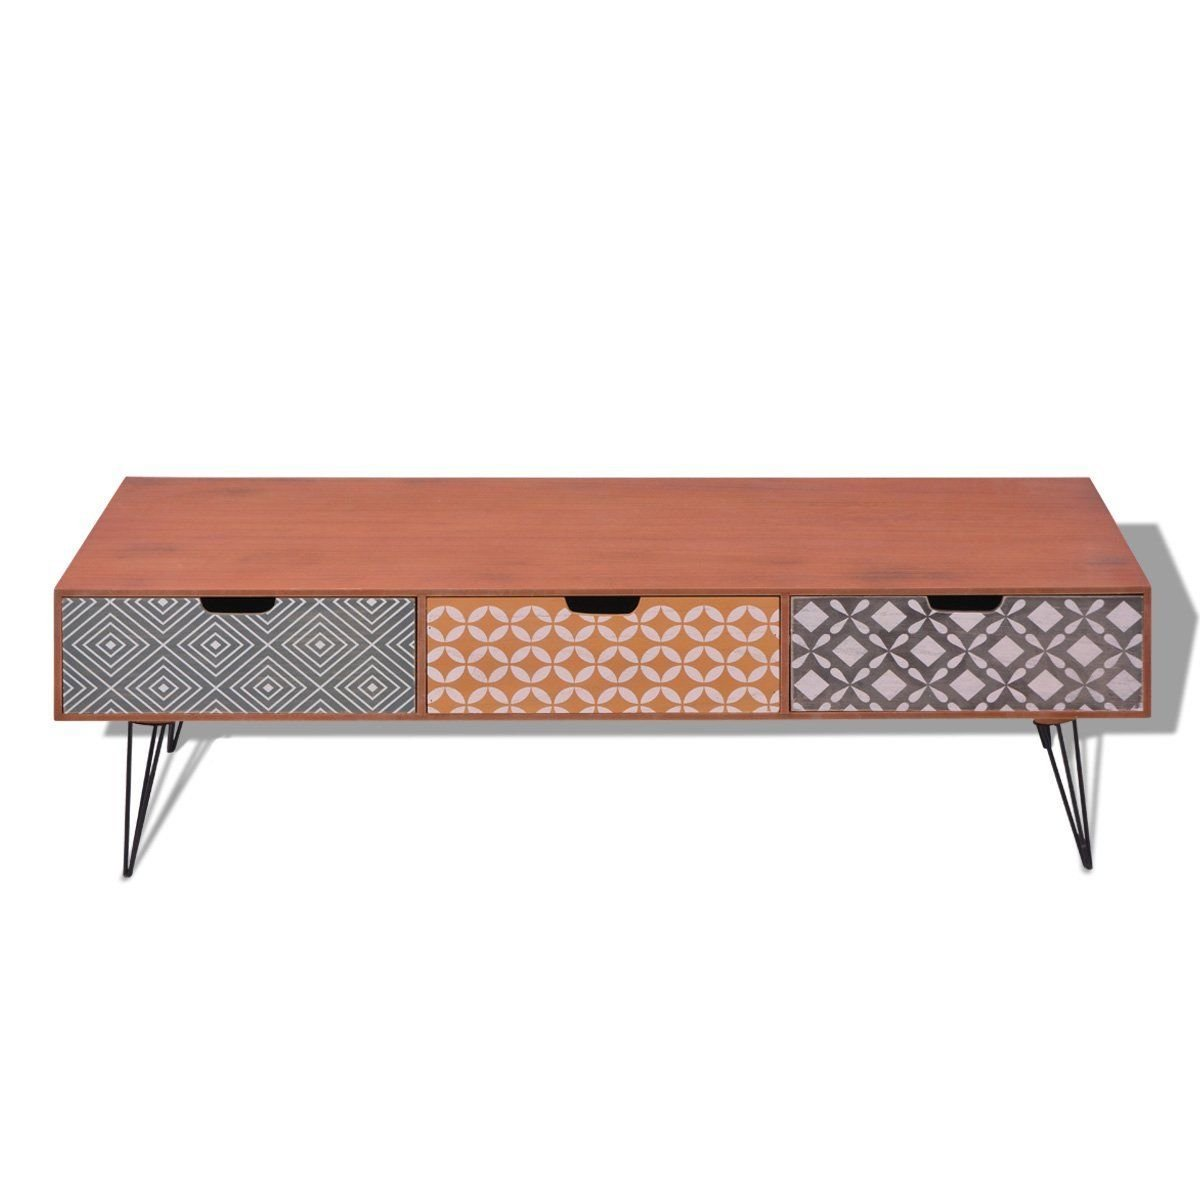 Retro Style TV Cabinet Storage Drawers Sideboard Low Side Console Table Stand